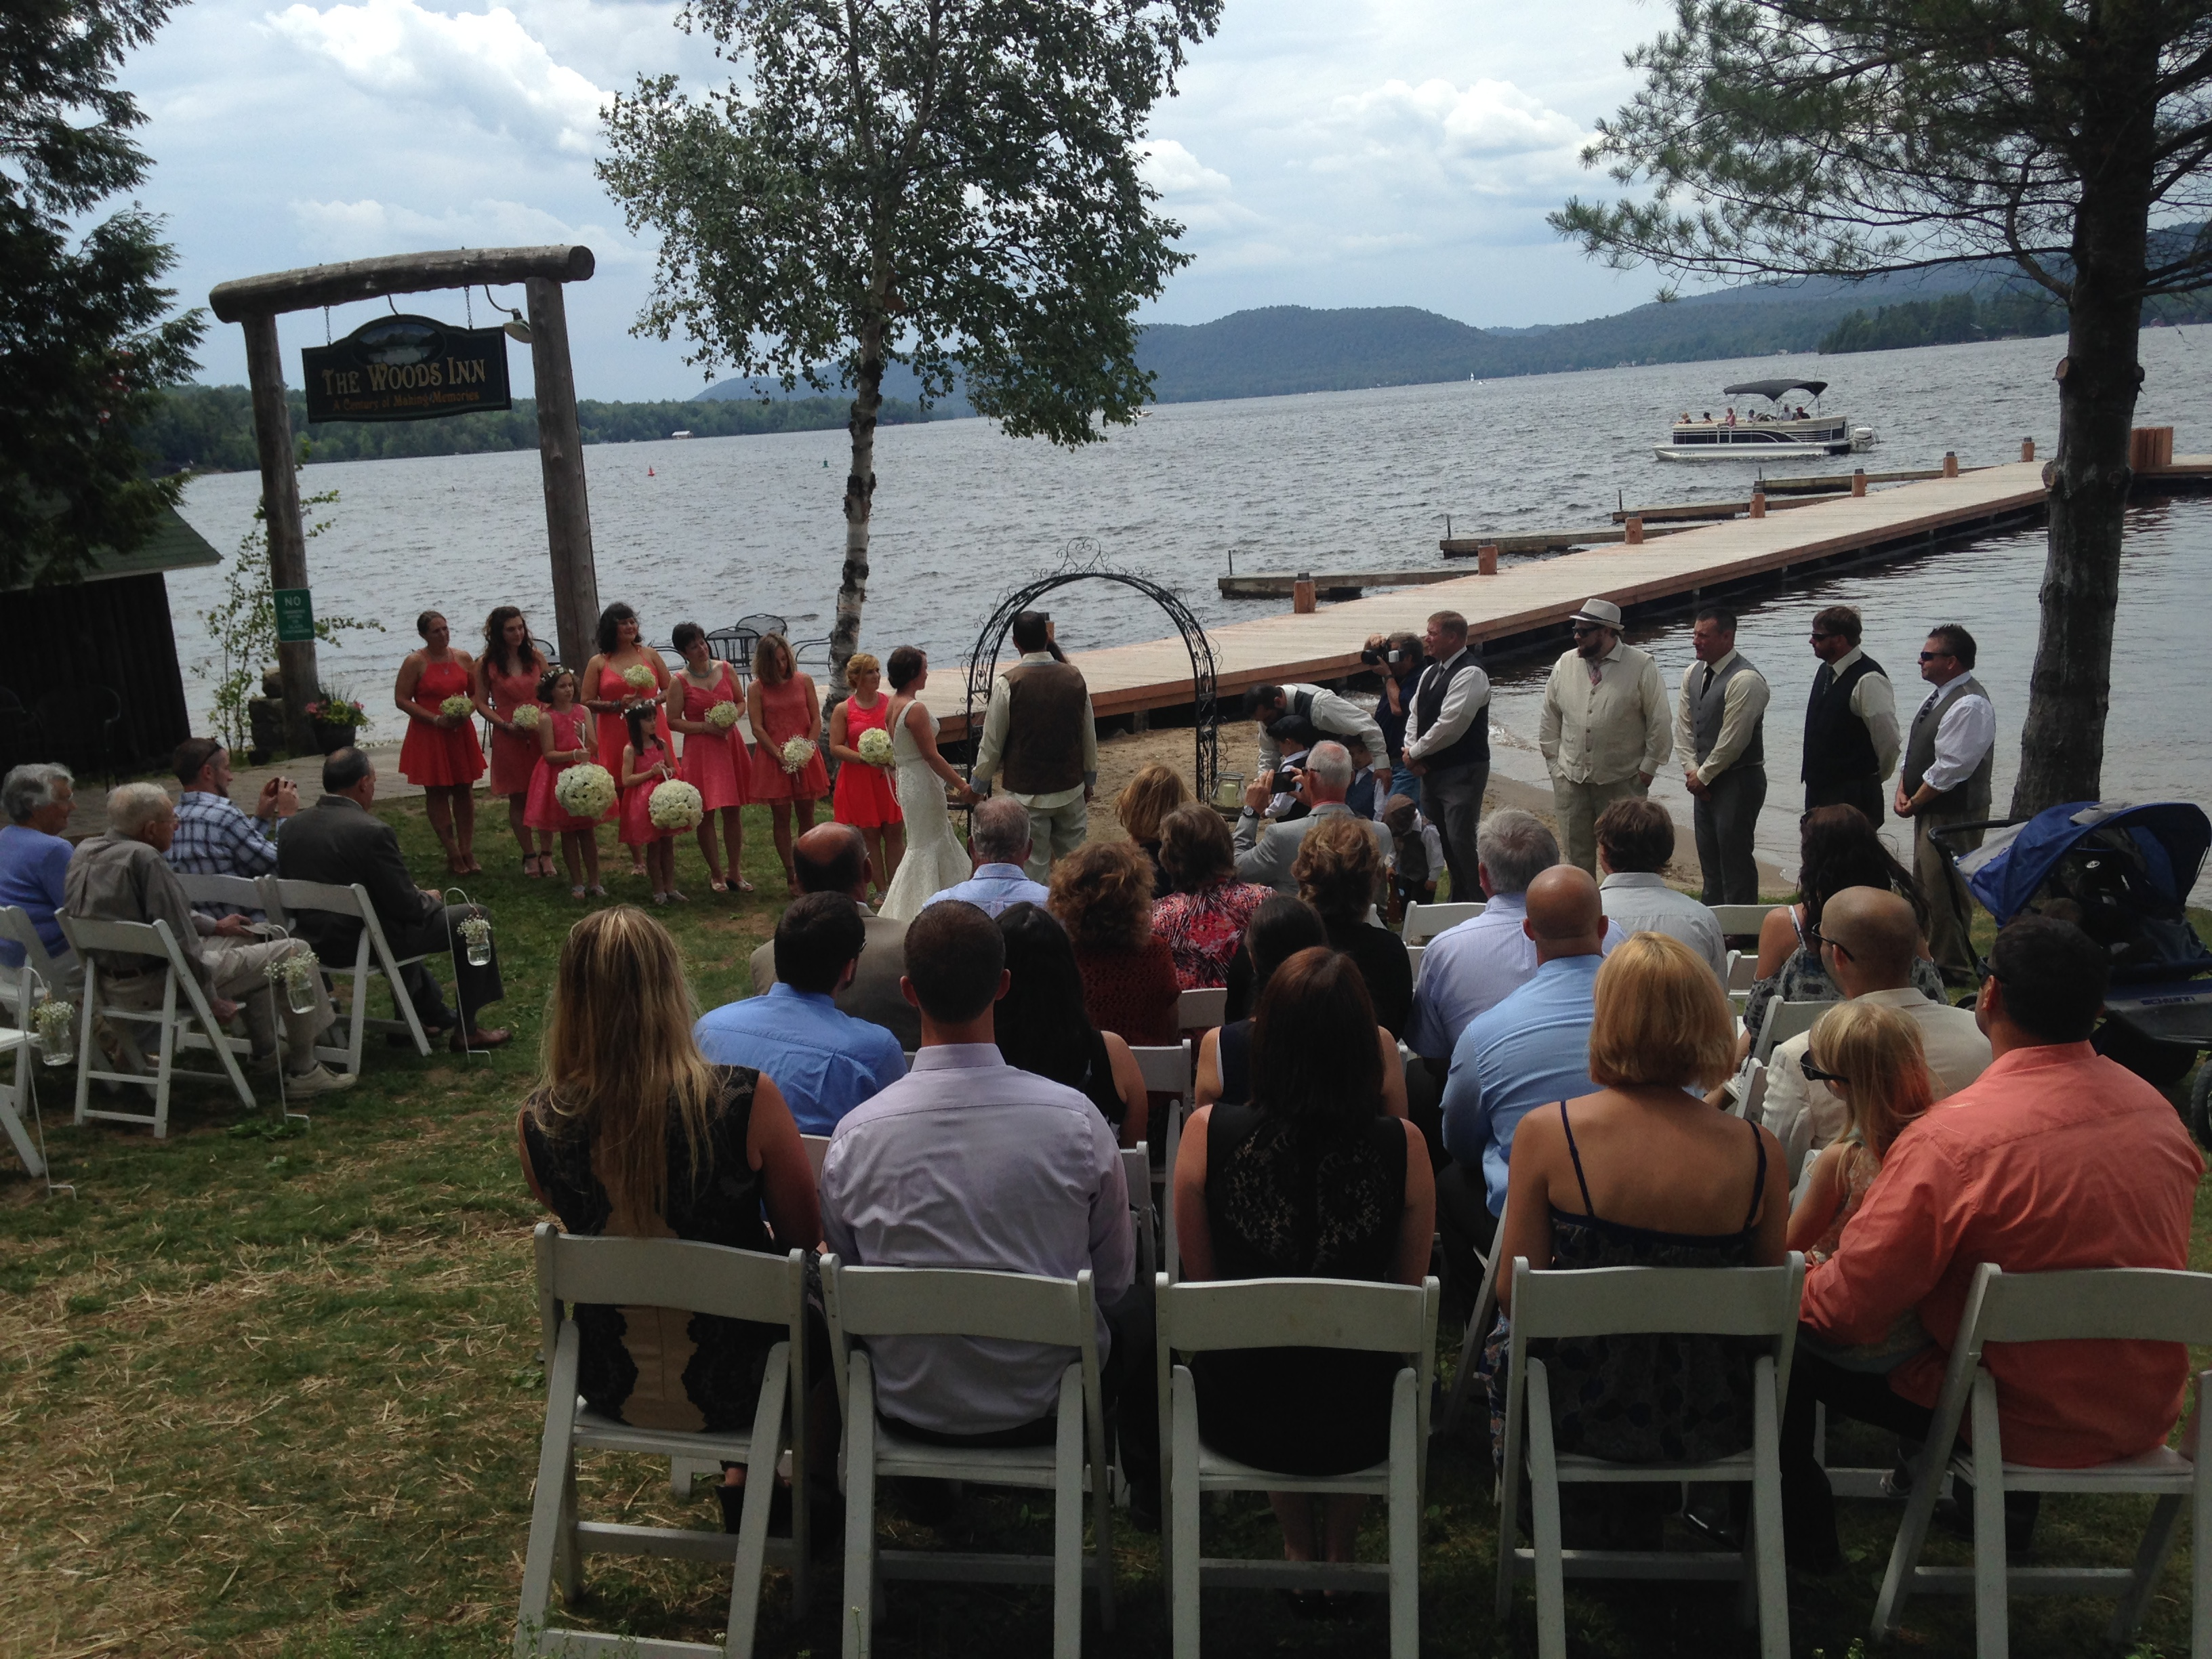 What a beautiful place for a wedding!